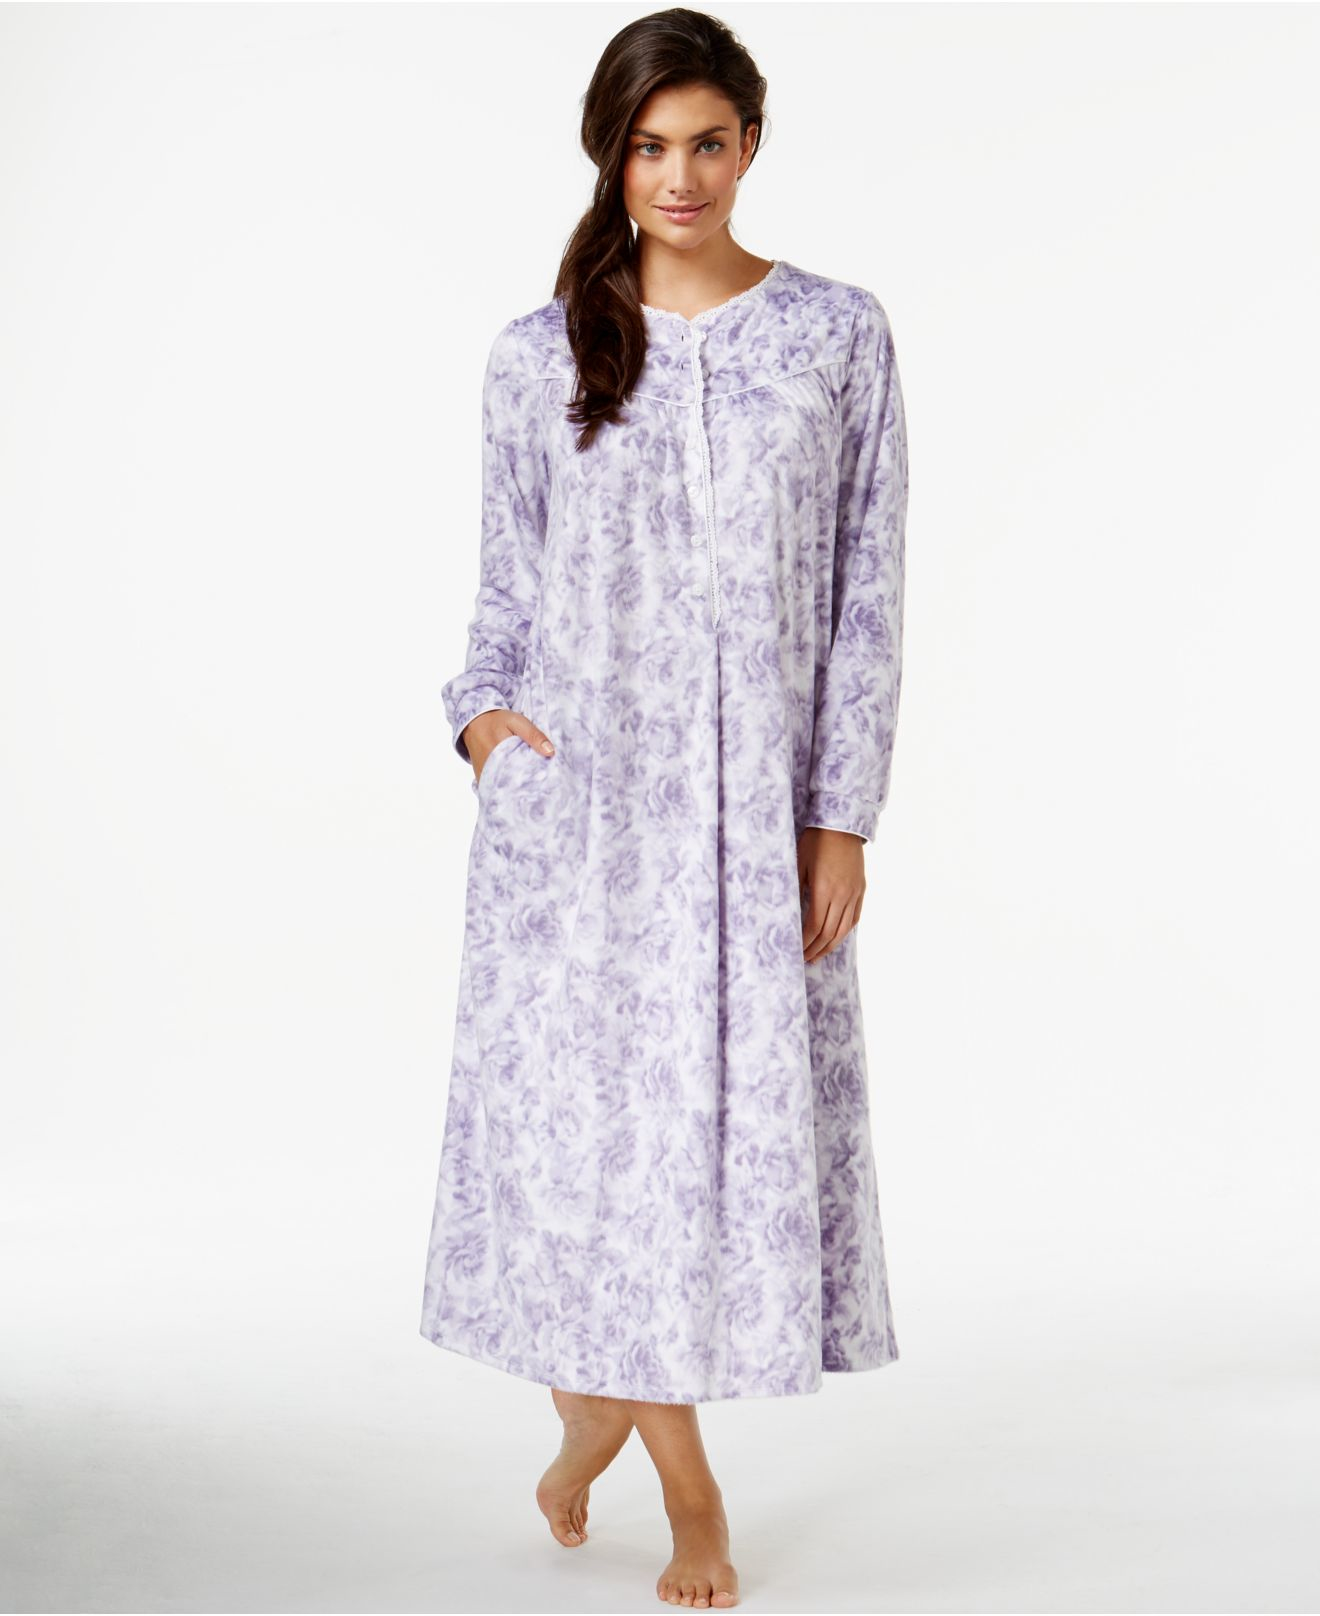 Lyst - Lanz Of Salzburg Long Flannel Nightgown in Purple